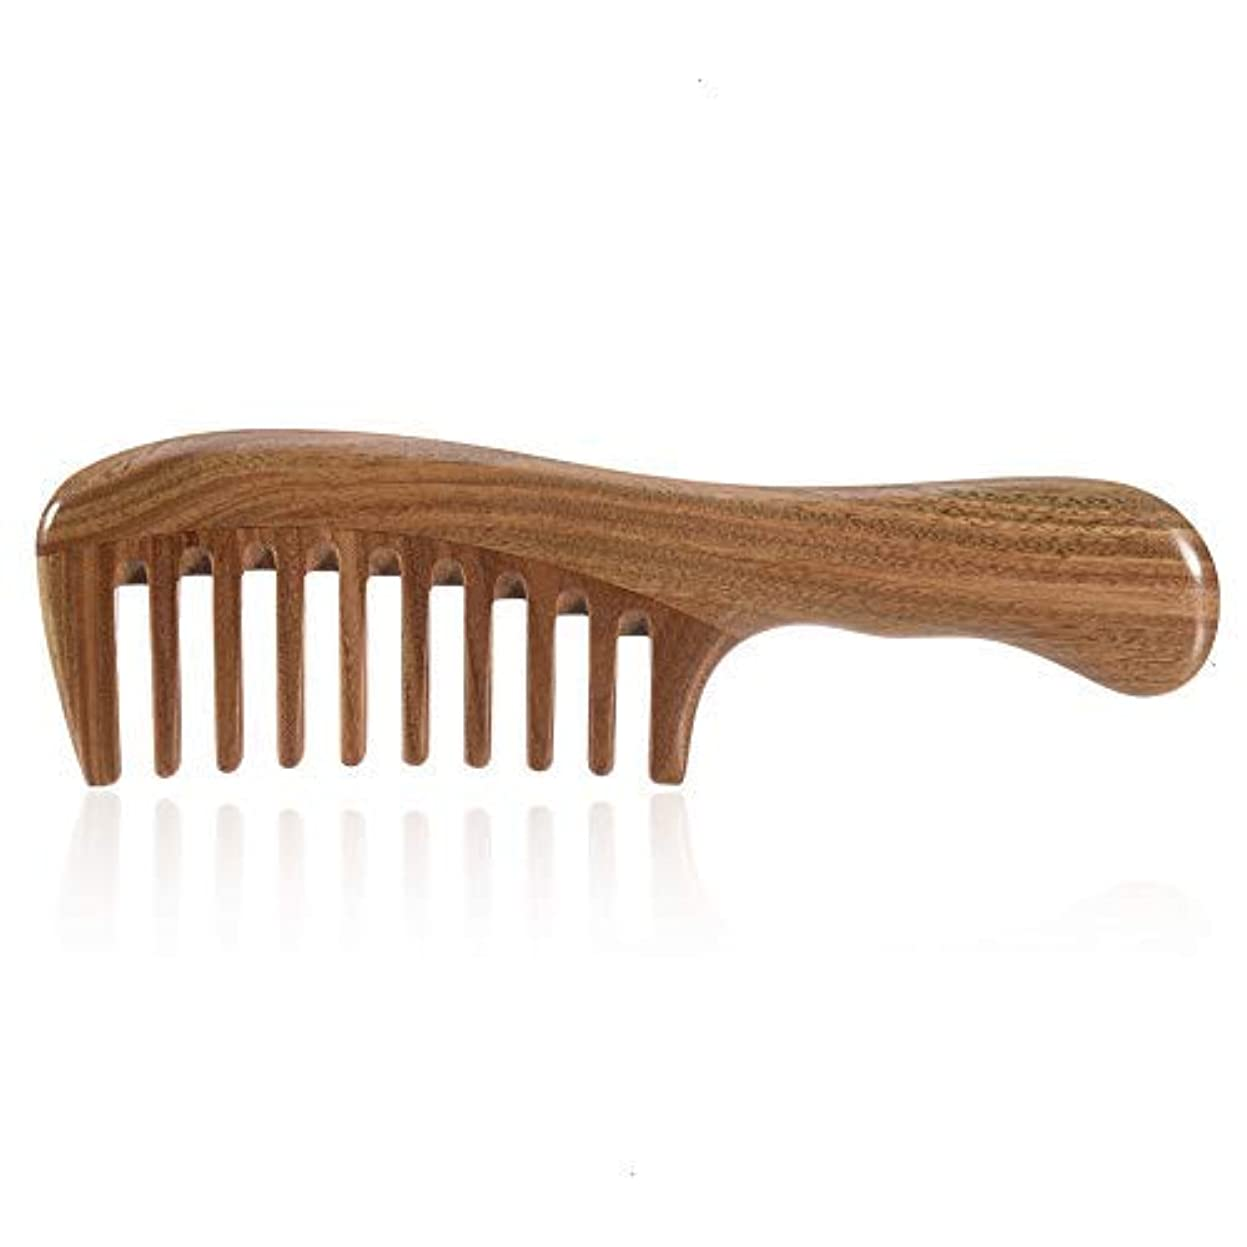 ラテンモニカテクスチャーFeeko Wooden Comb, 1 PC Wide Tooth Detangling Handmade Natural Green Sandalwood Comb Anti-Static Thick Curly Wavy...